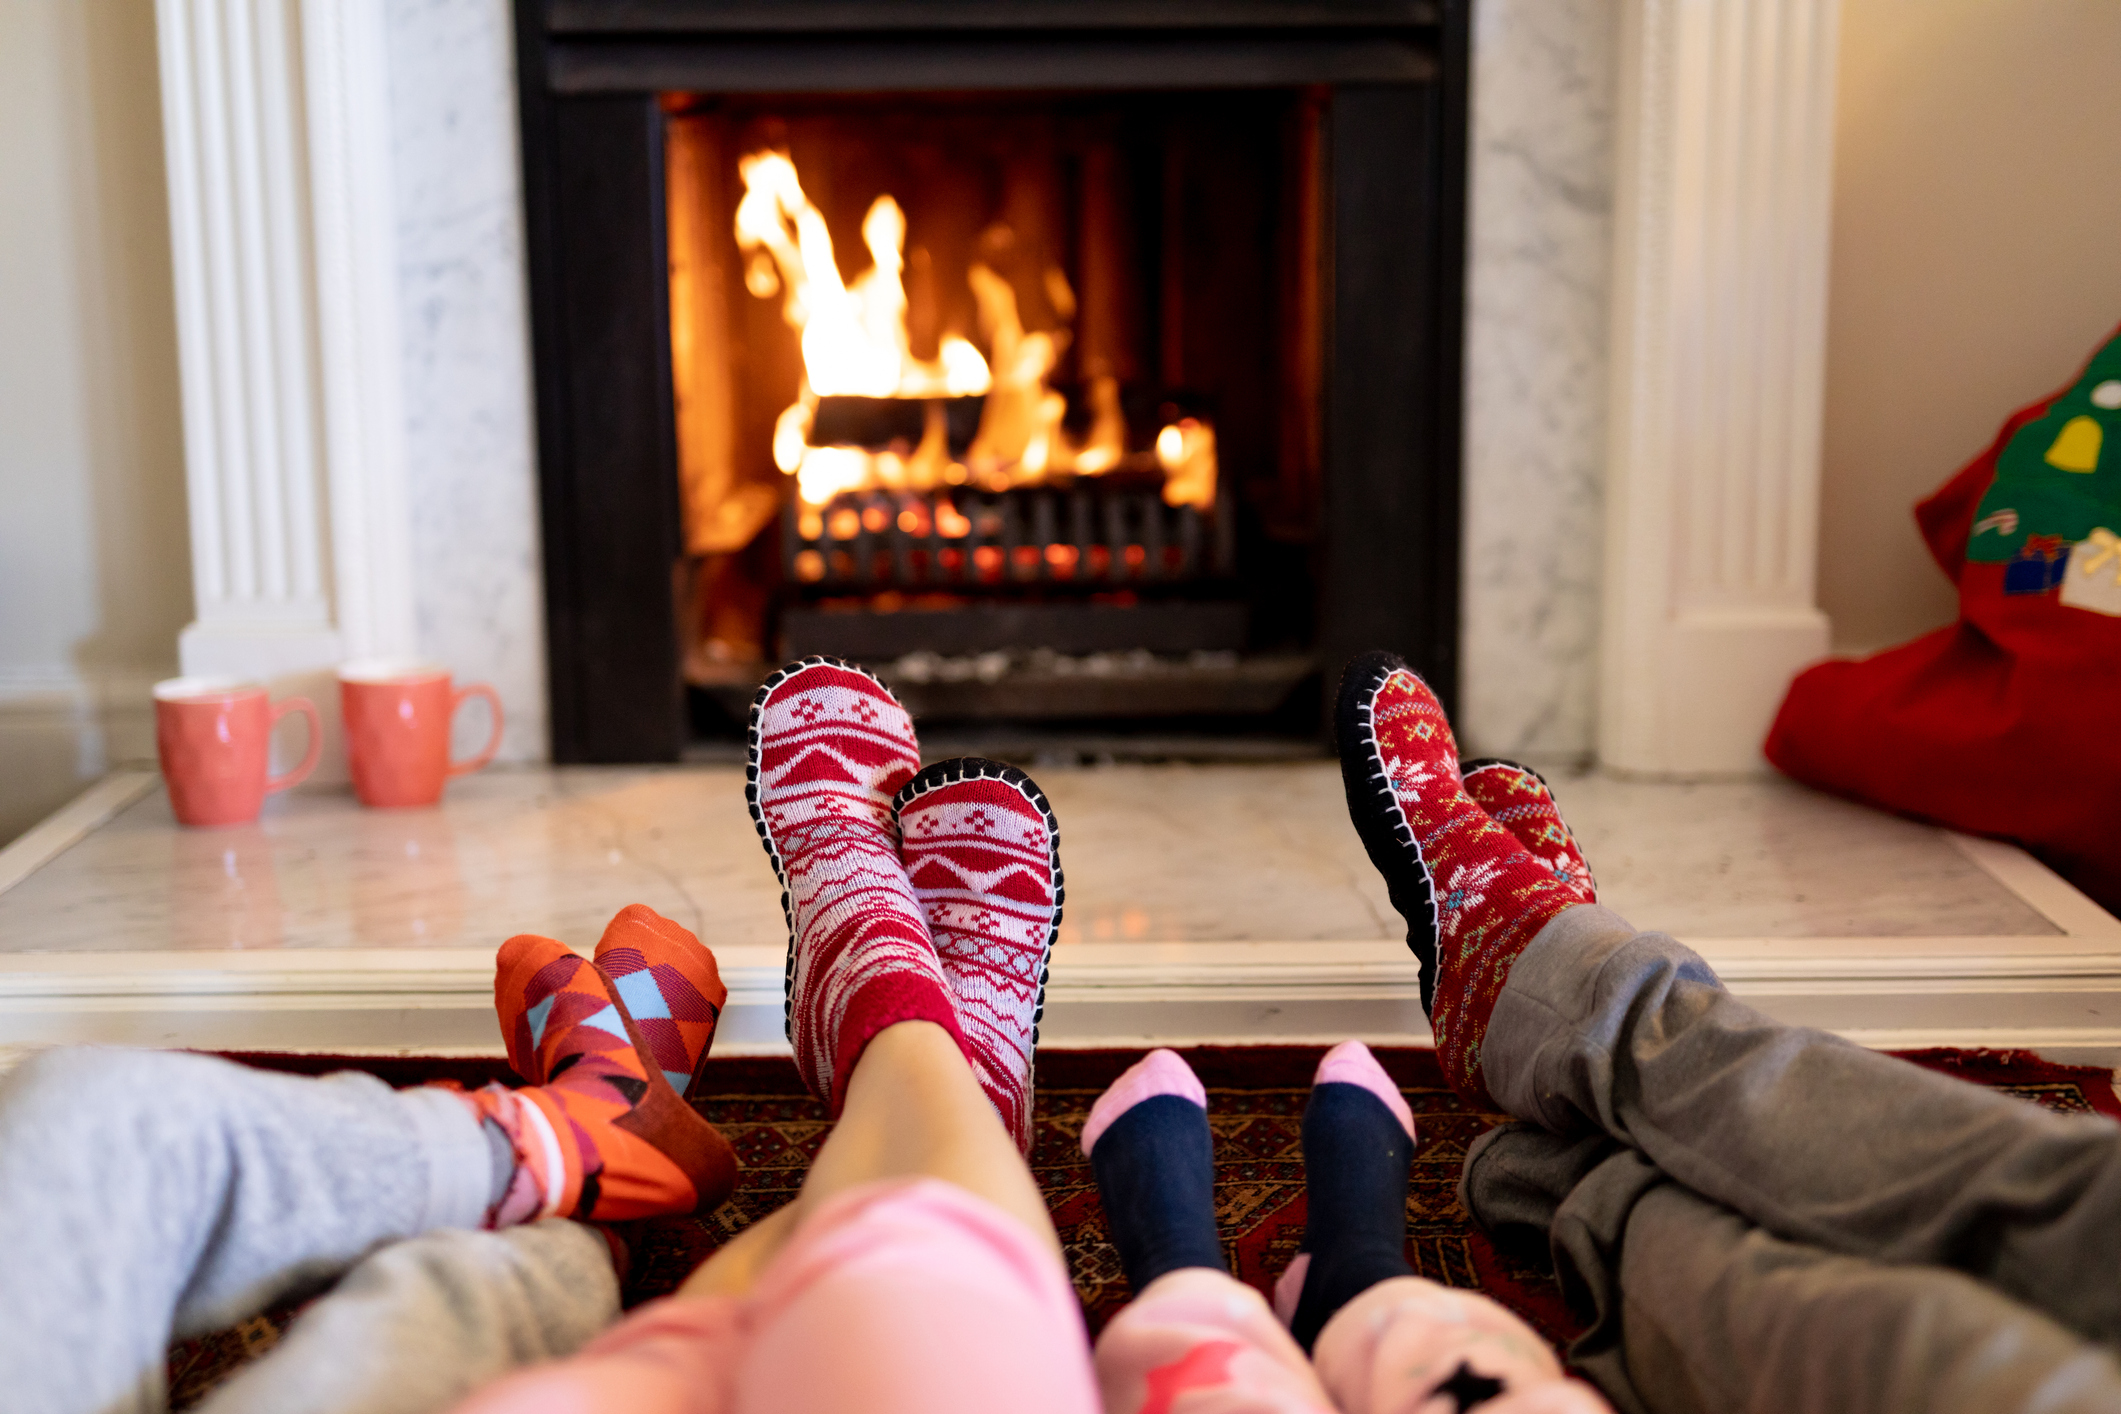 Gas Or Wood? How To Safely Keep Warm This Winter.